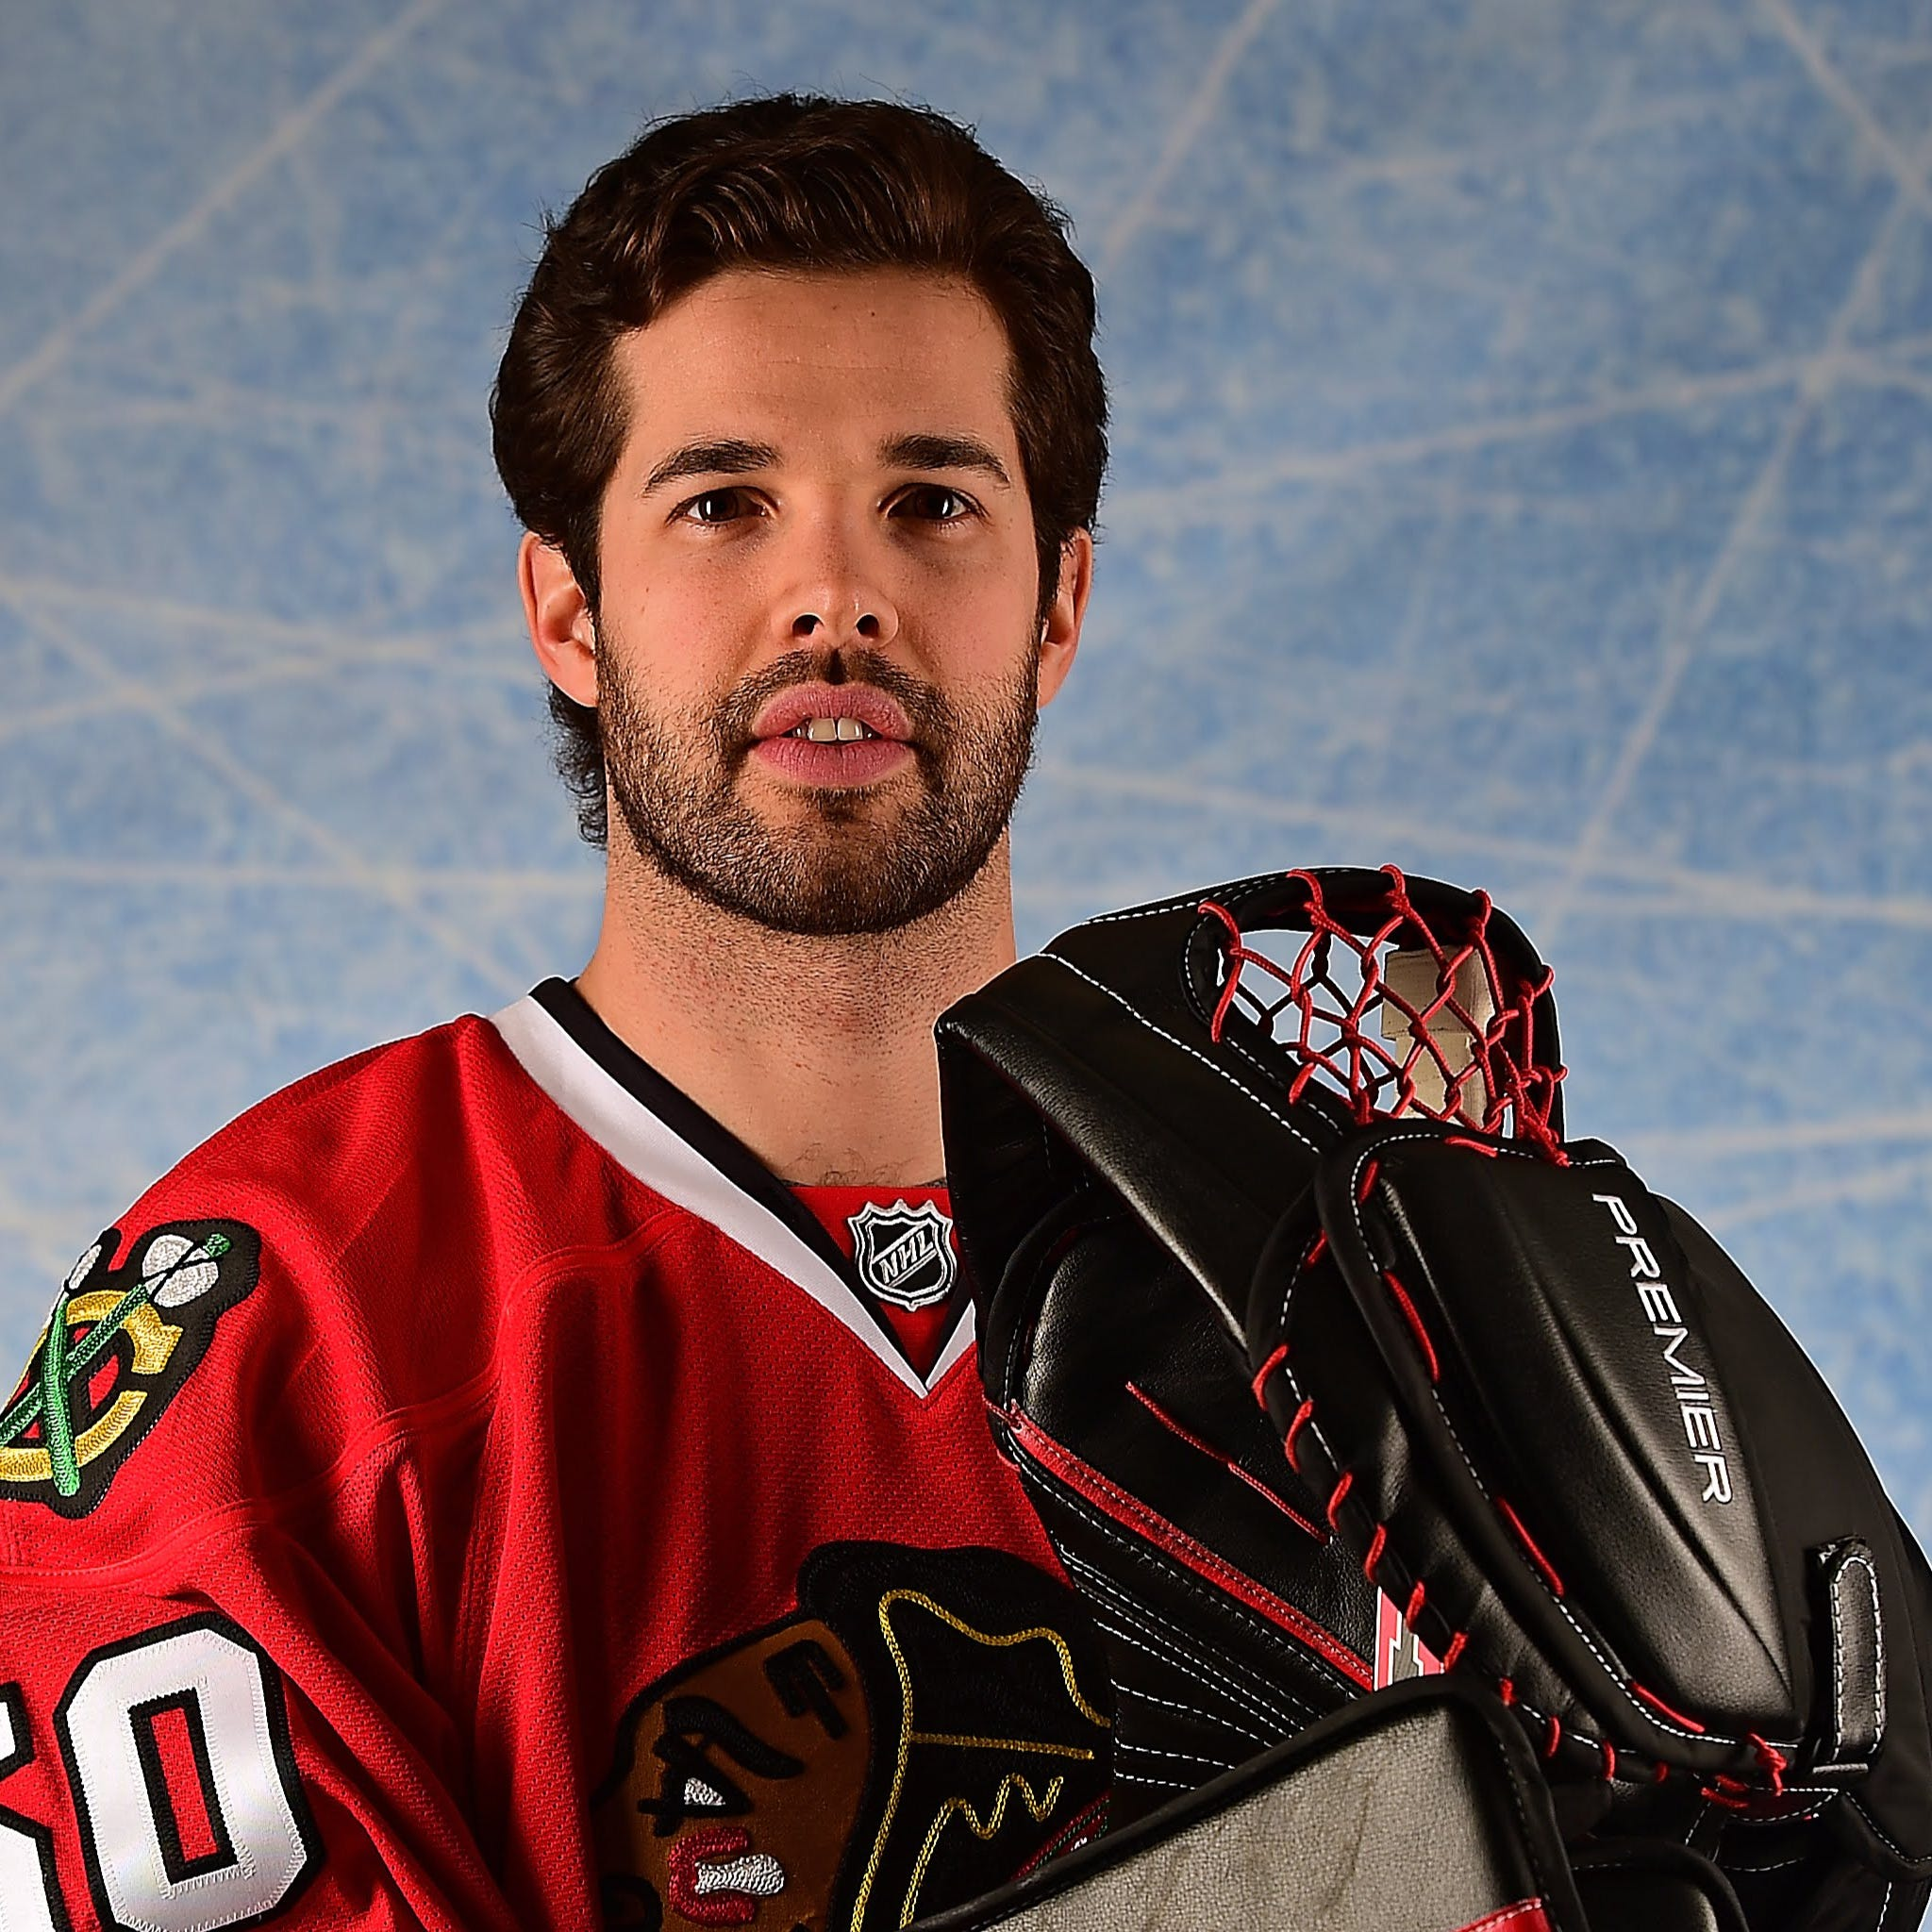 Chicago Blackhawks goaltender Corey Crawford will drive pace car for IndyCar Grand Prix